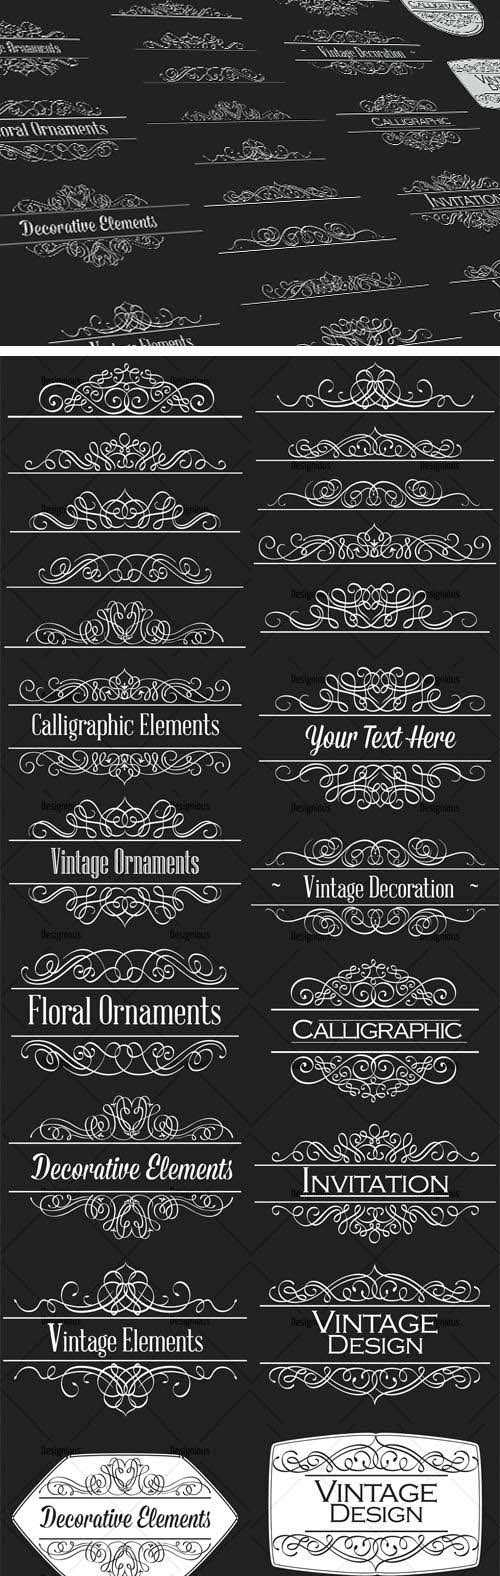 24 Top Quality Calligraphic Ornaments in Vector Worth $40